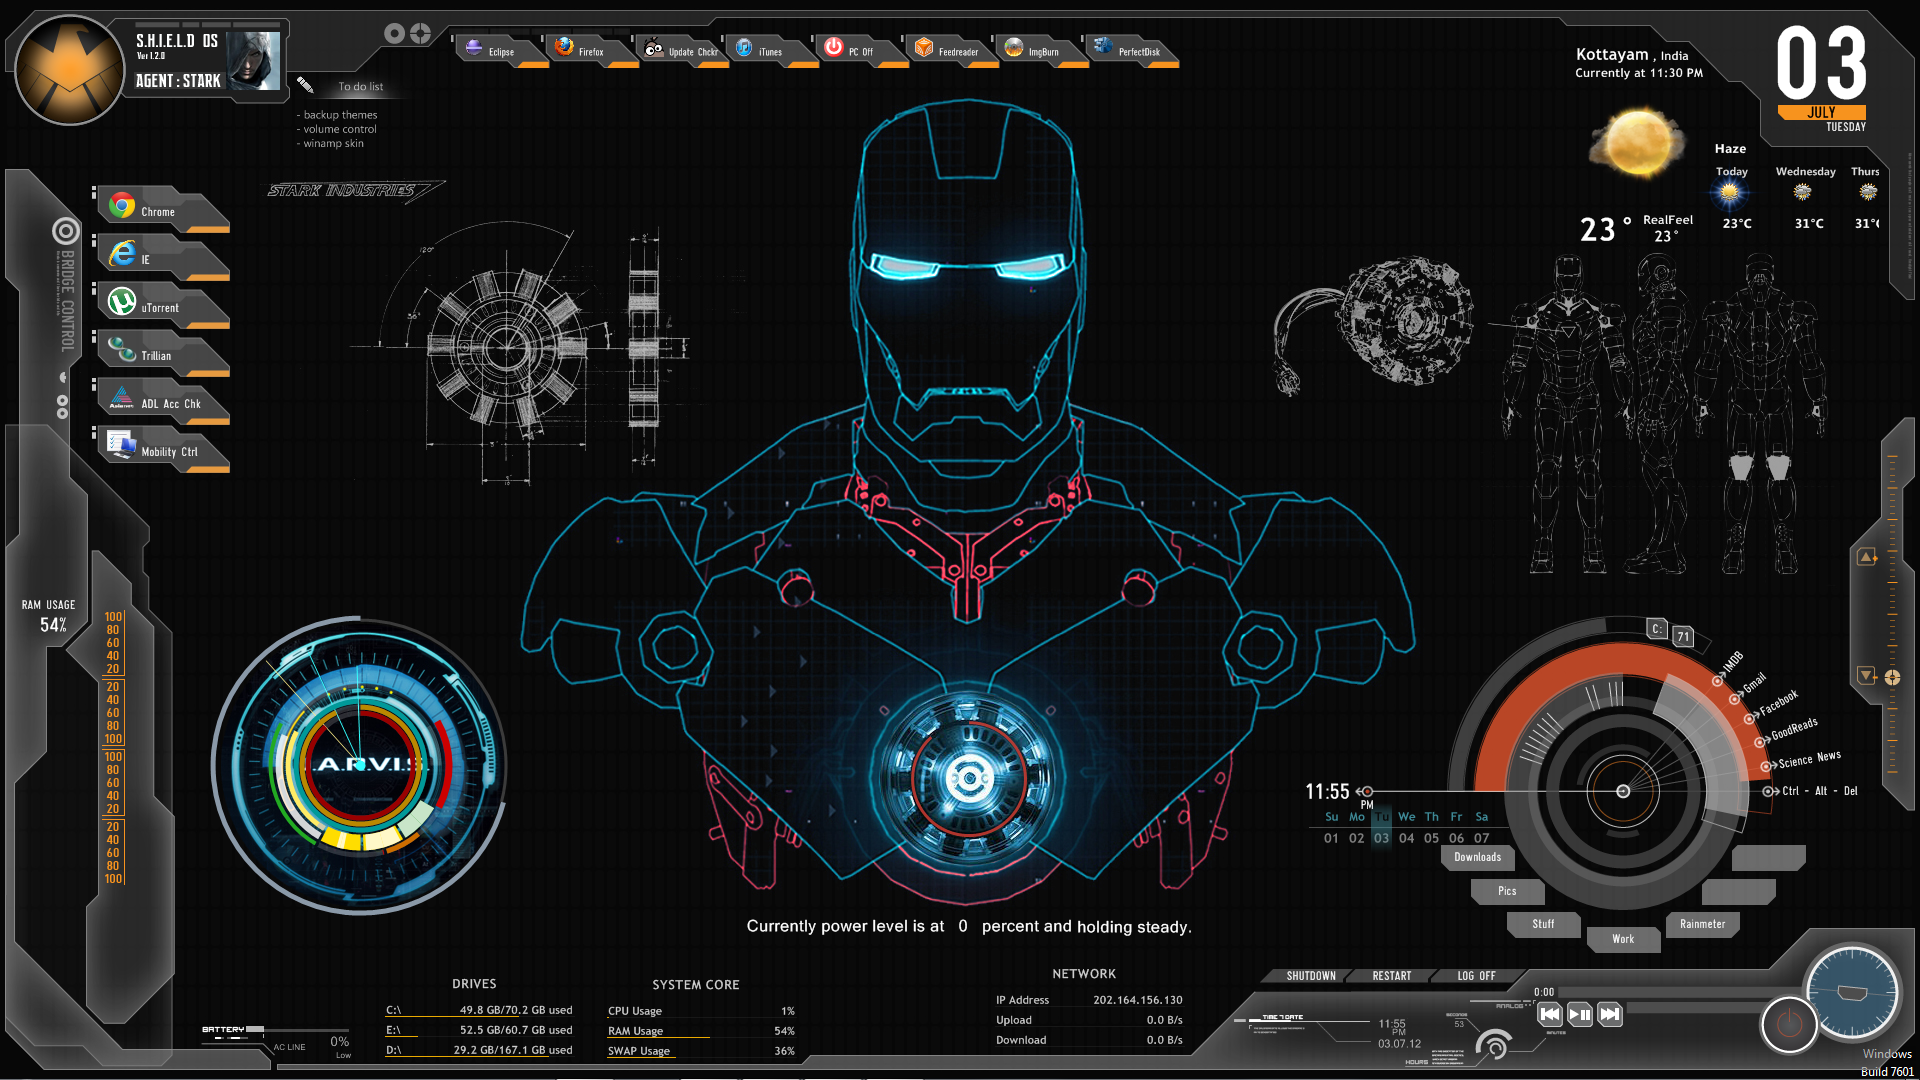 Shield ironman jarvis rainmeter theme screenshot by for Deviantart rainmeter